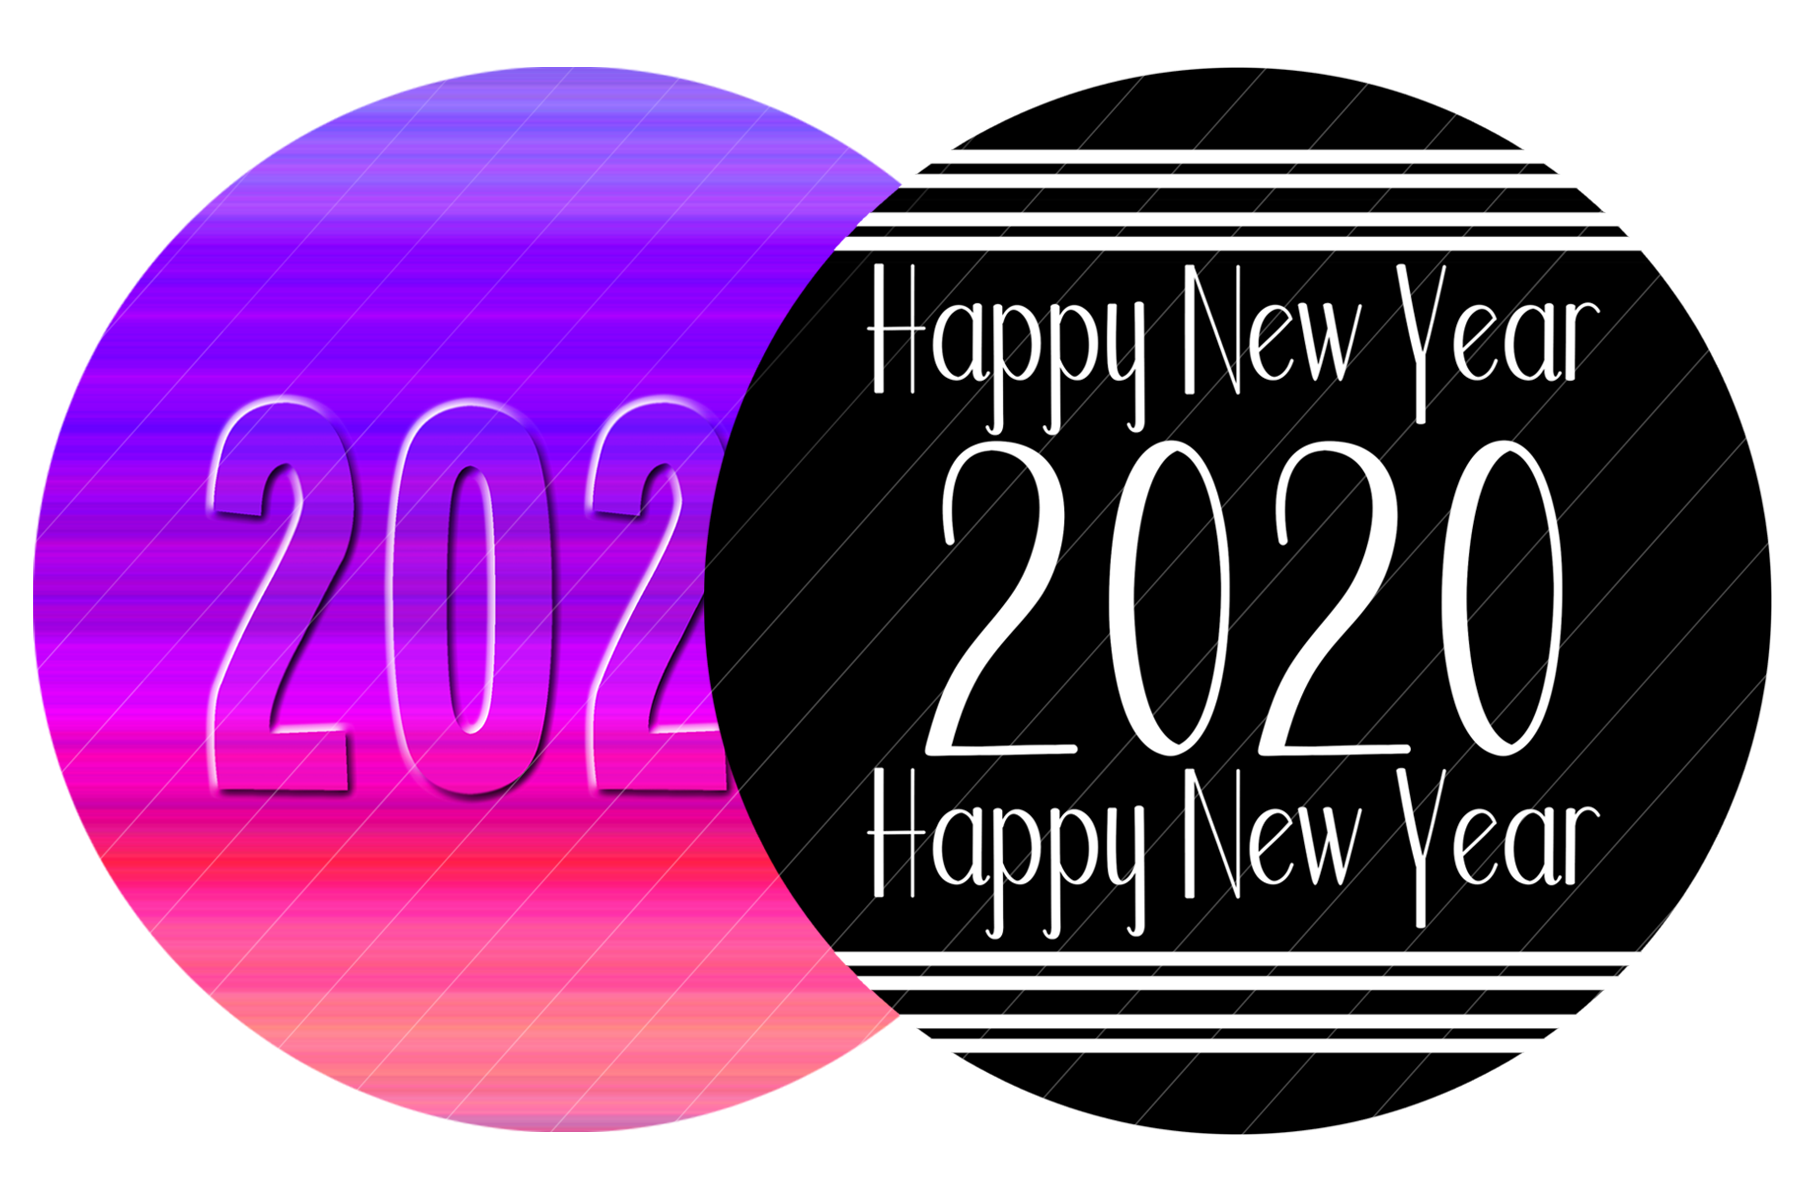 2020 New Year Designs for PRINTING, High Resolution example image 5